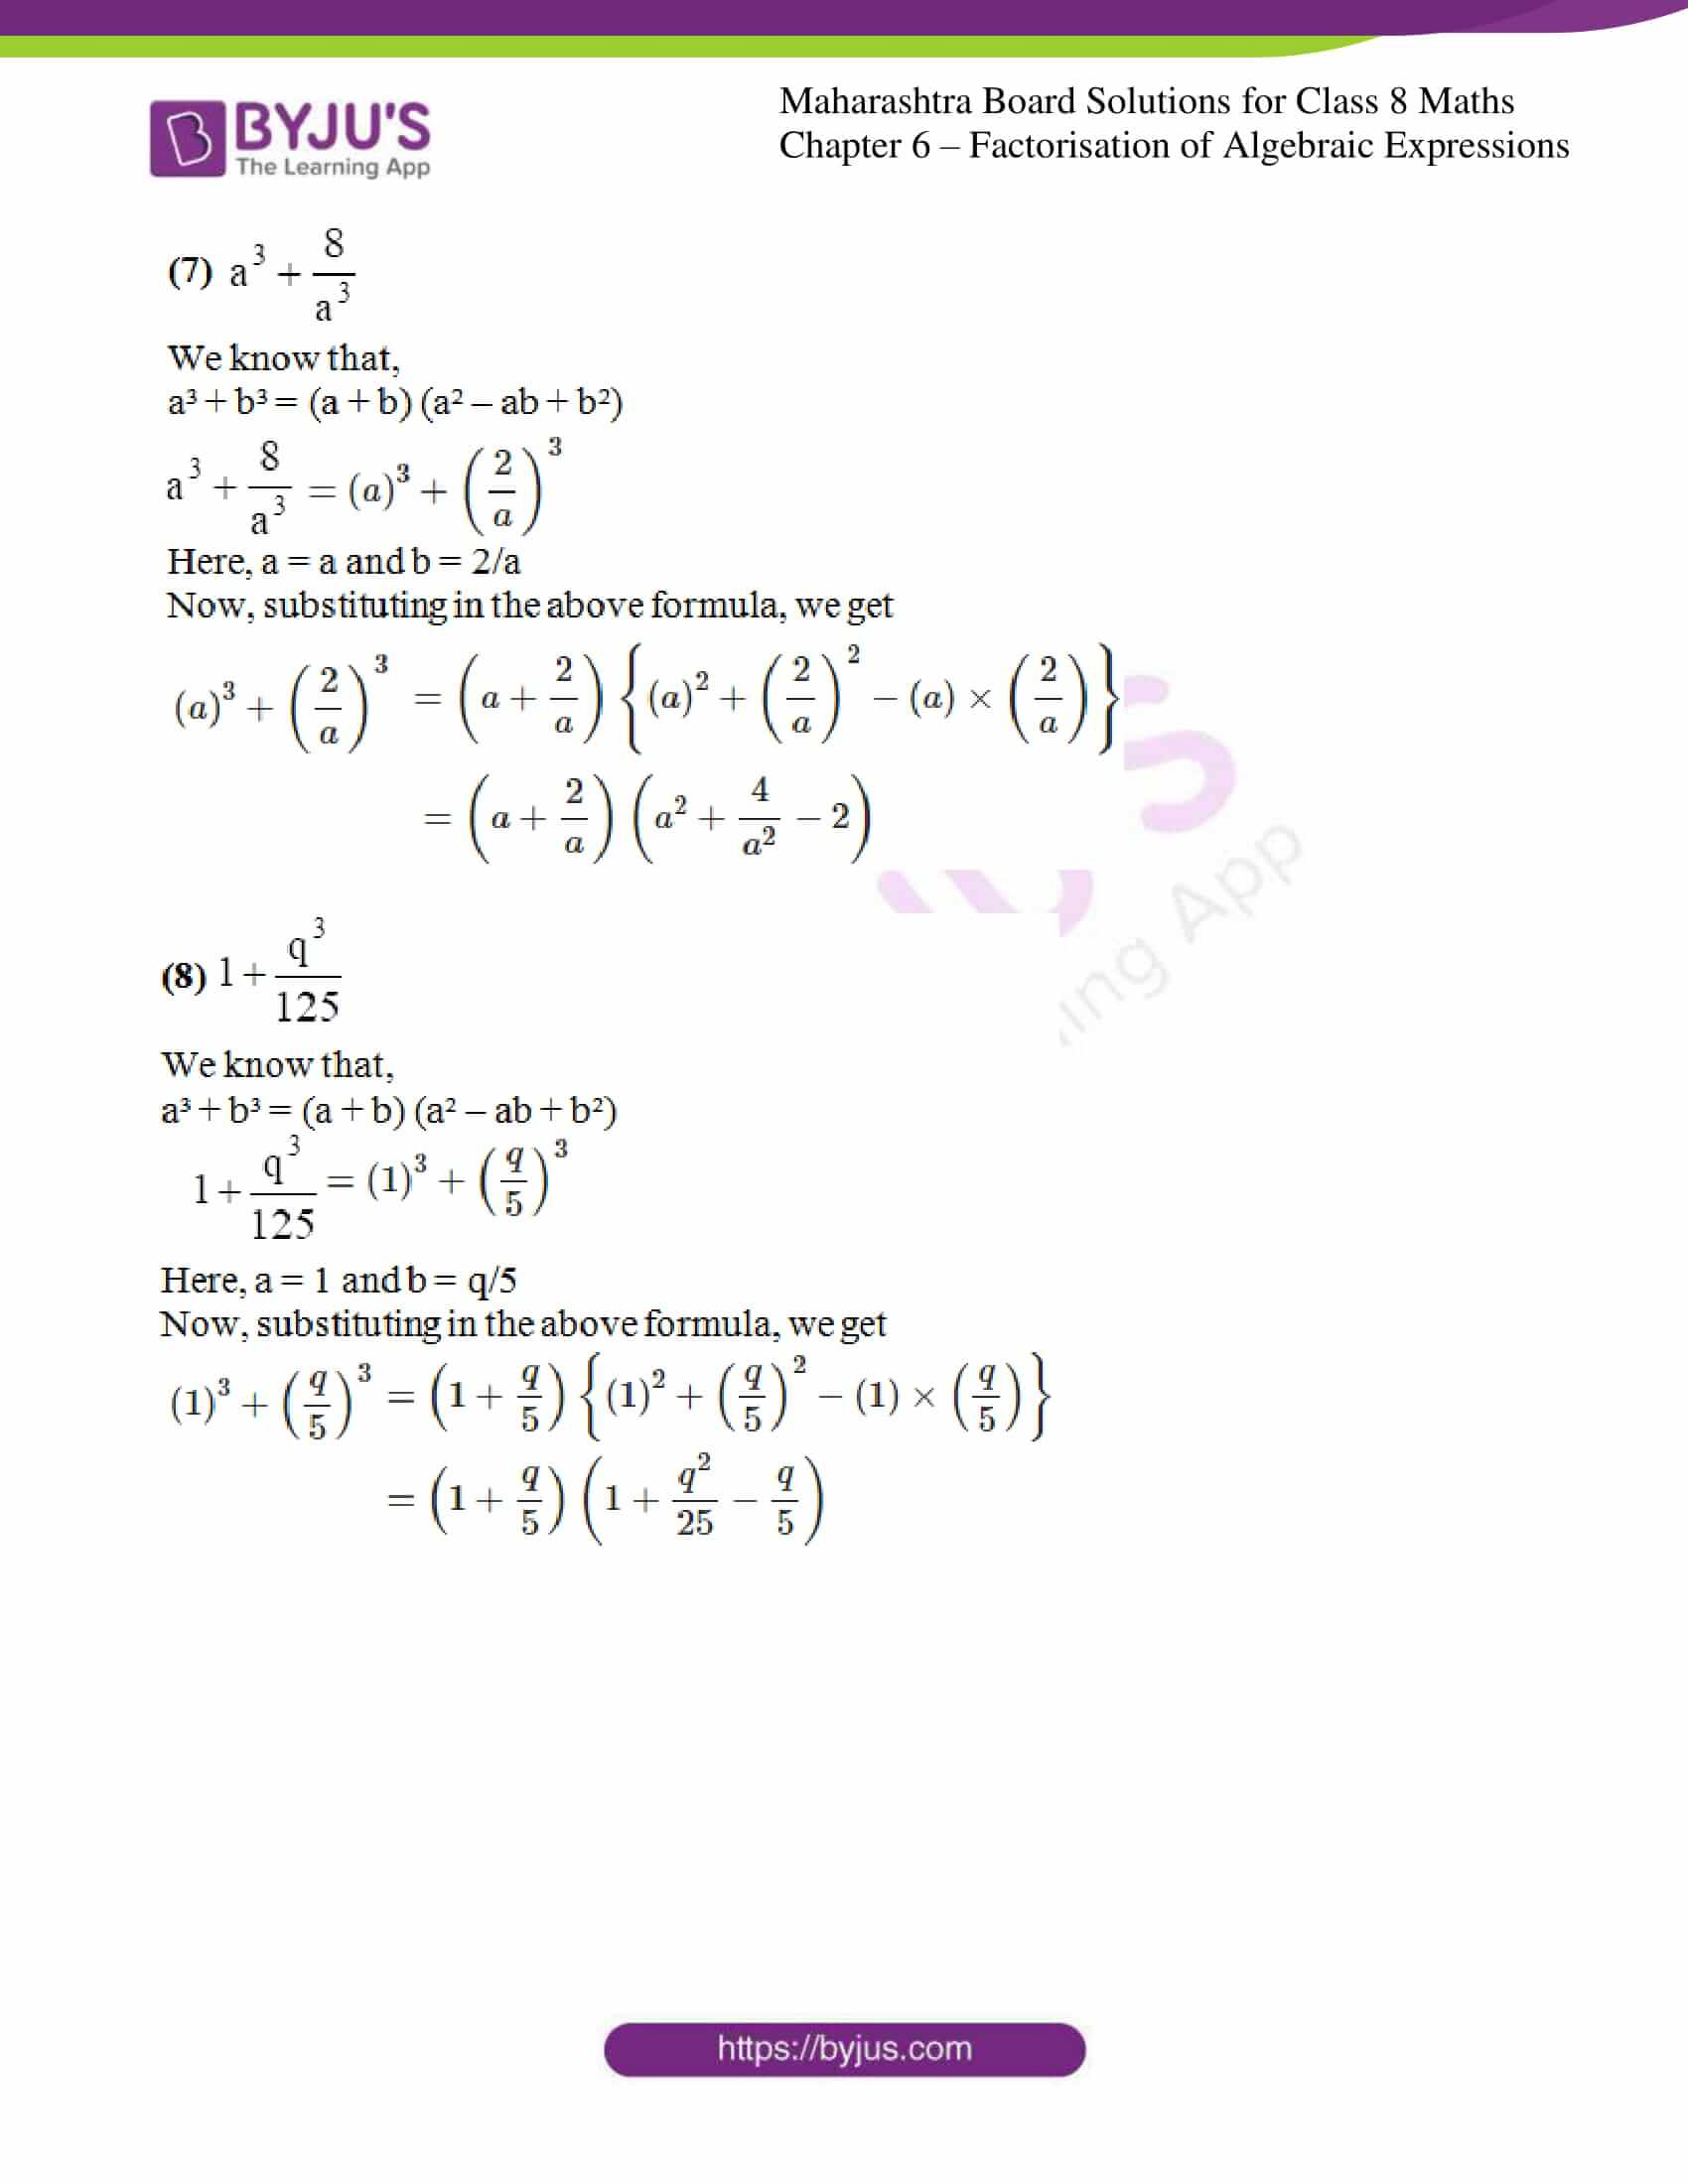 msbshse sol for class 8 maths chapter 6 06